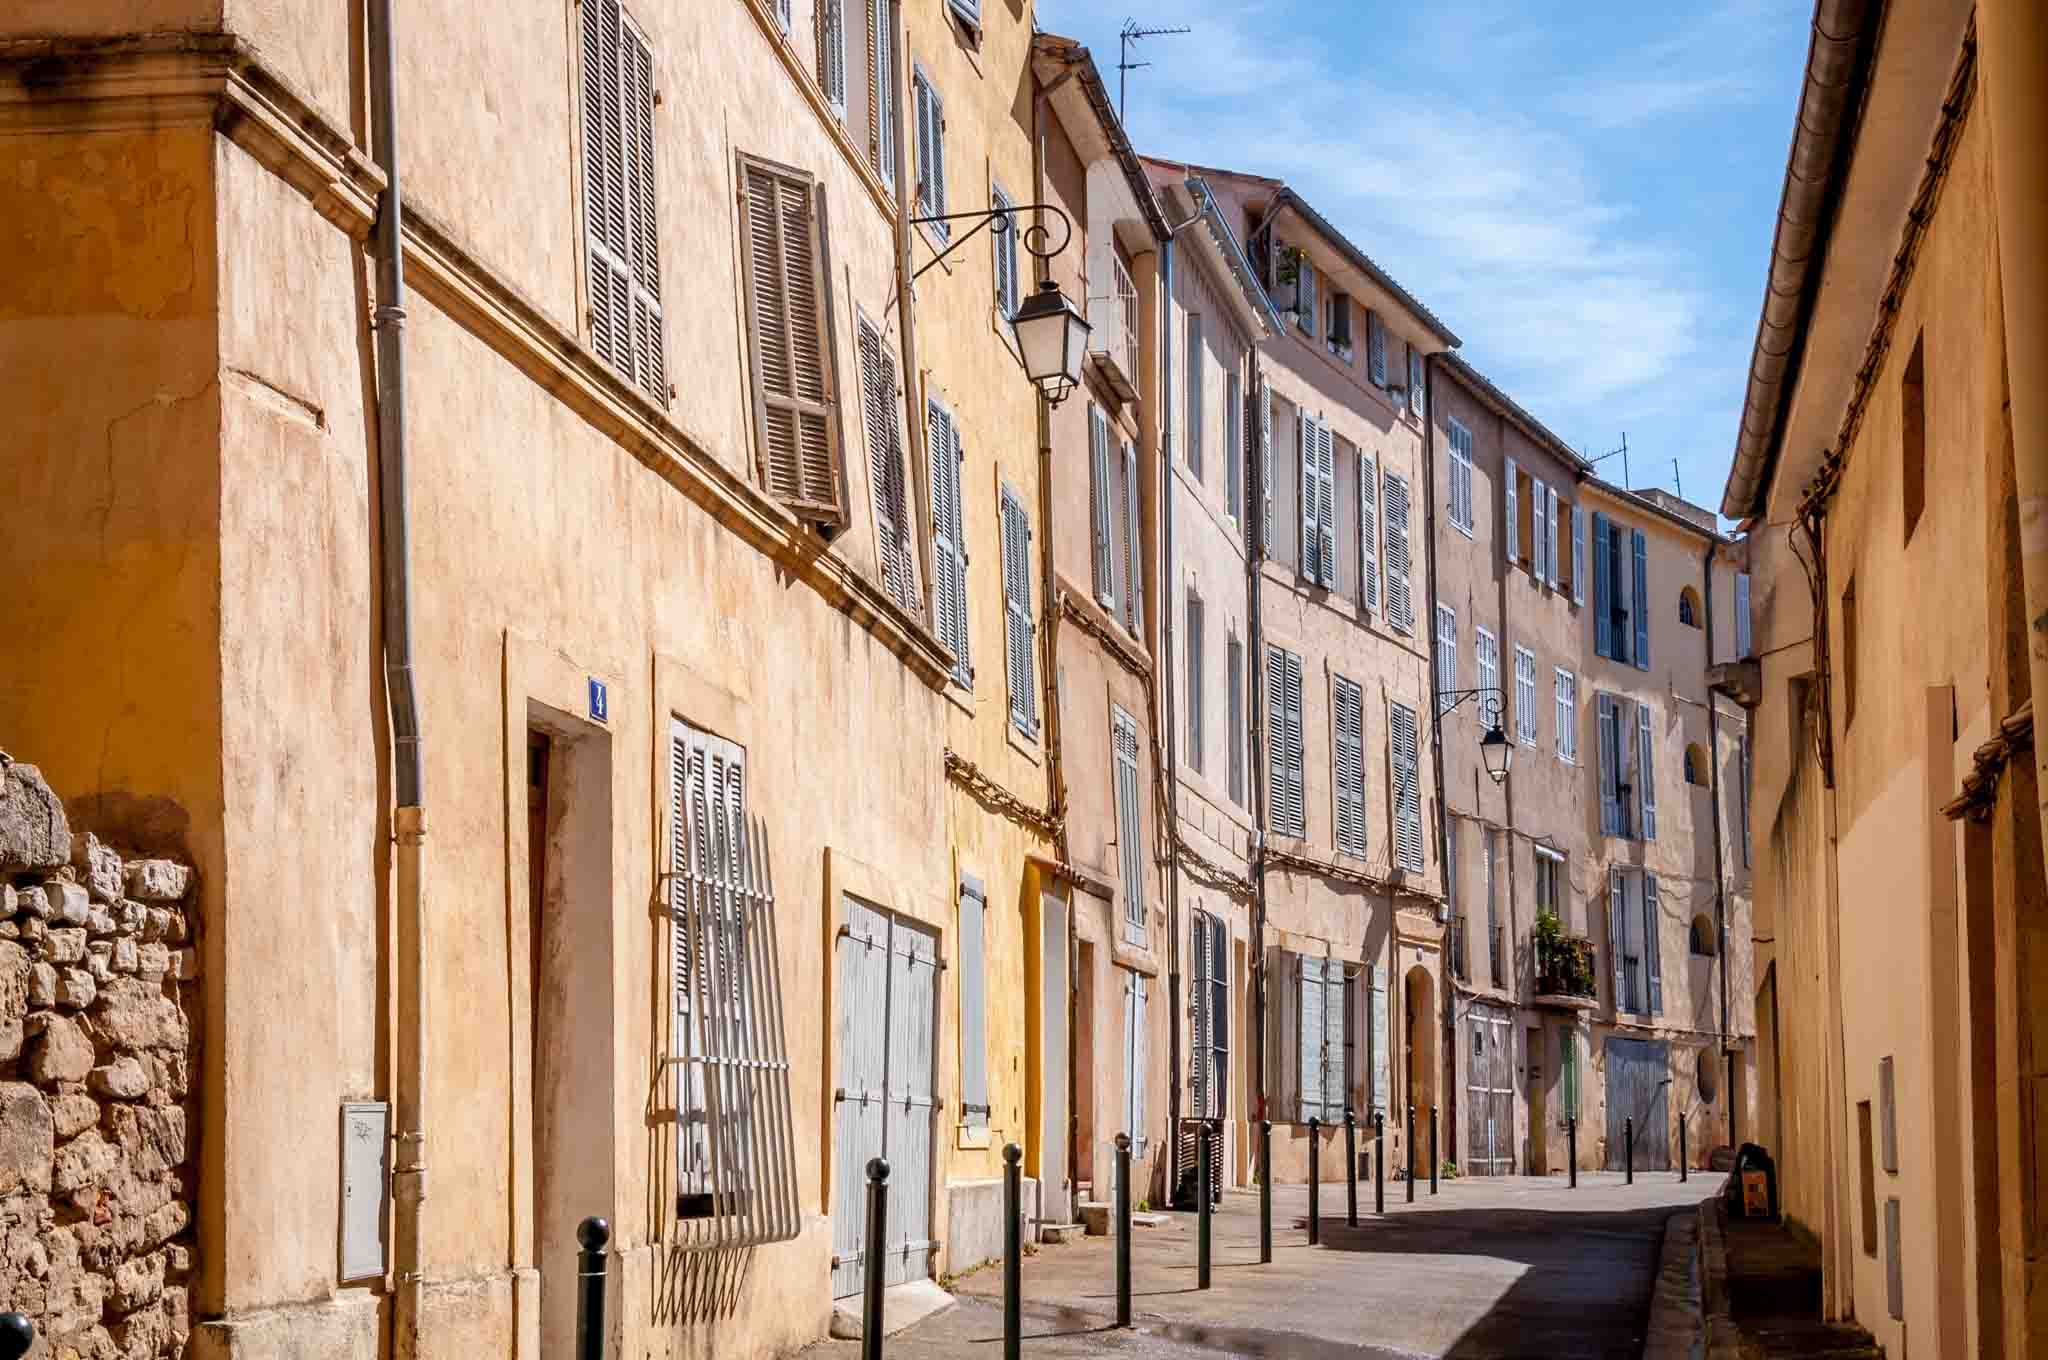 Peach and yellow buildings in Aix-en-Provence, France